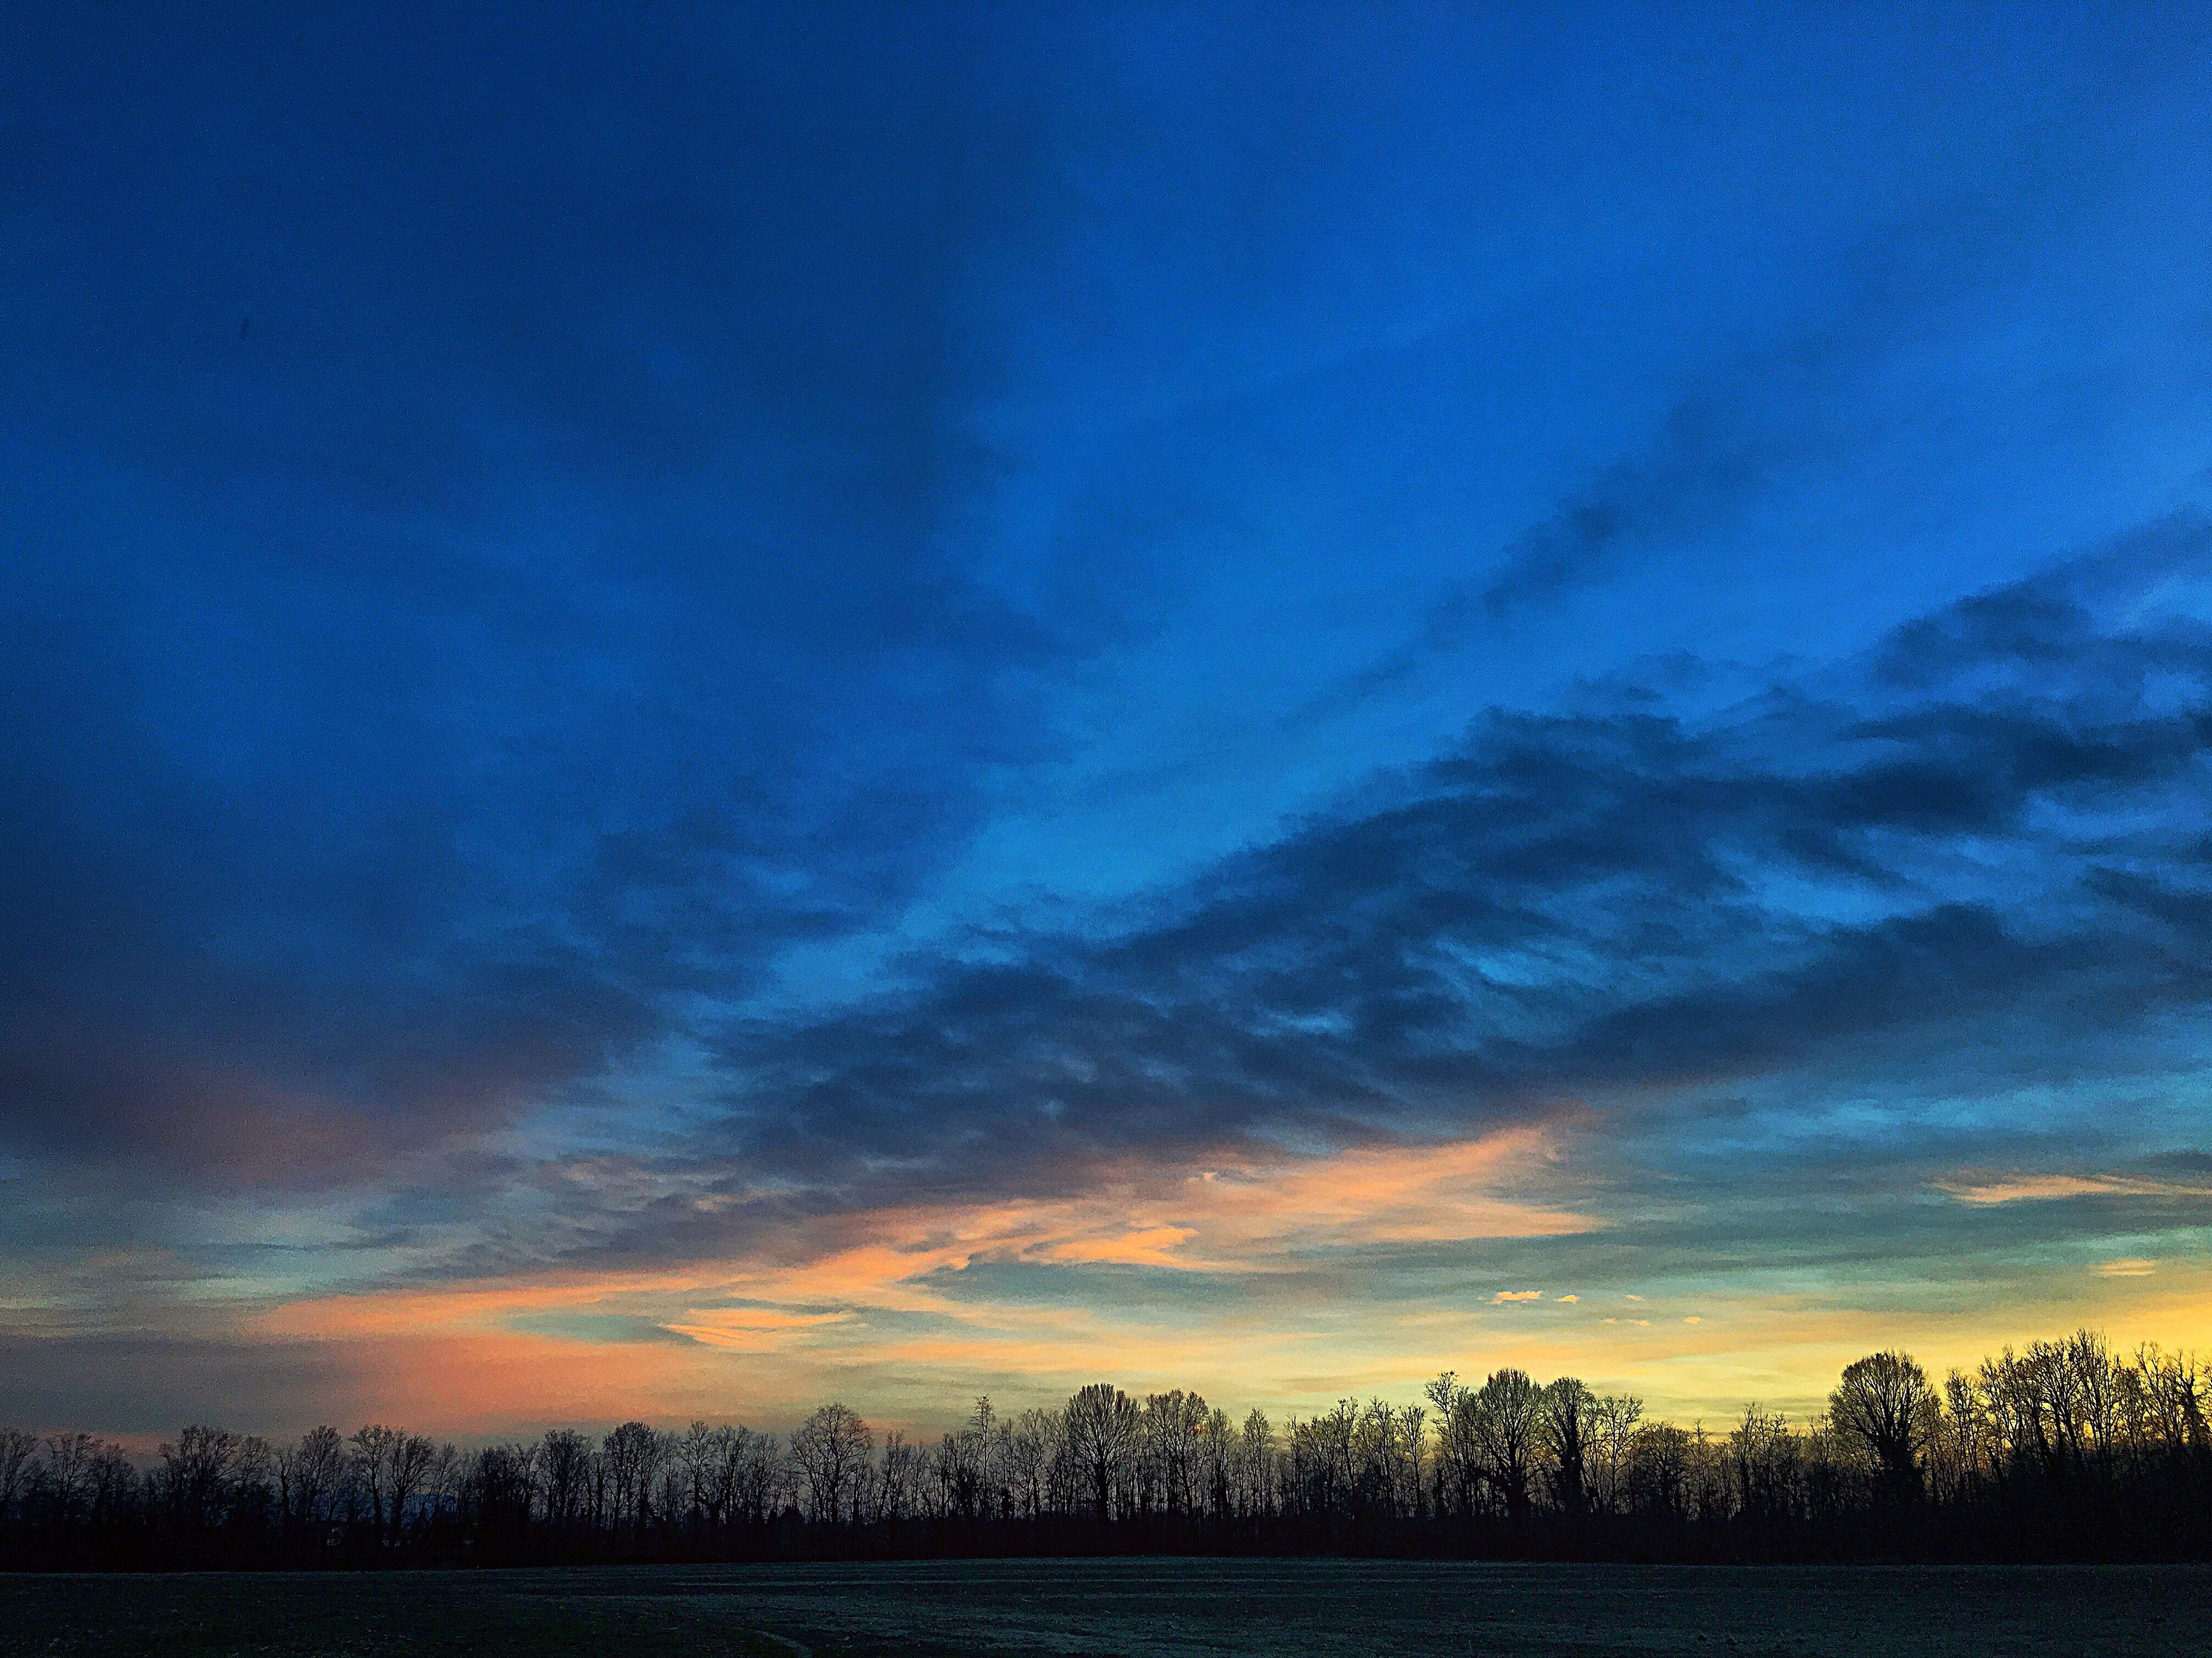 sky, blue, nature, tranquil scene, silhouette, scenics, beauty in nature, astronomy, dramatic sky, tranquility, no people, outdoors, sunset, tree, night, cloud - sky, space, milky way, star - space, galaxy